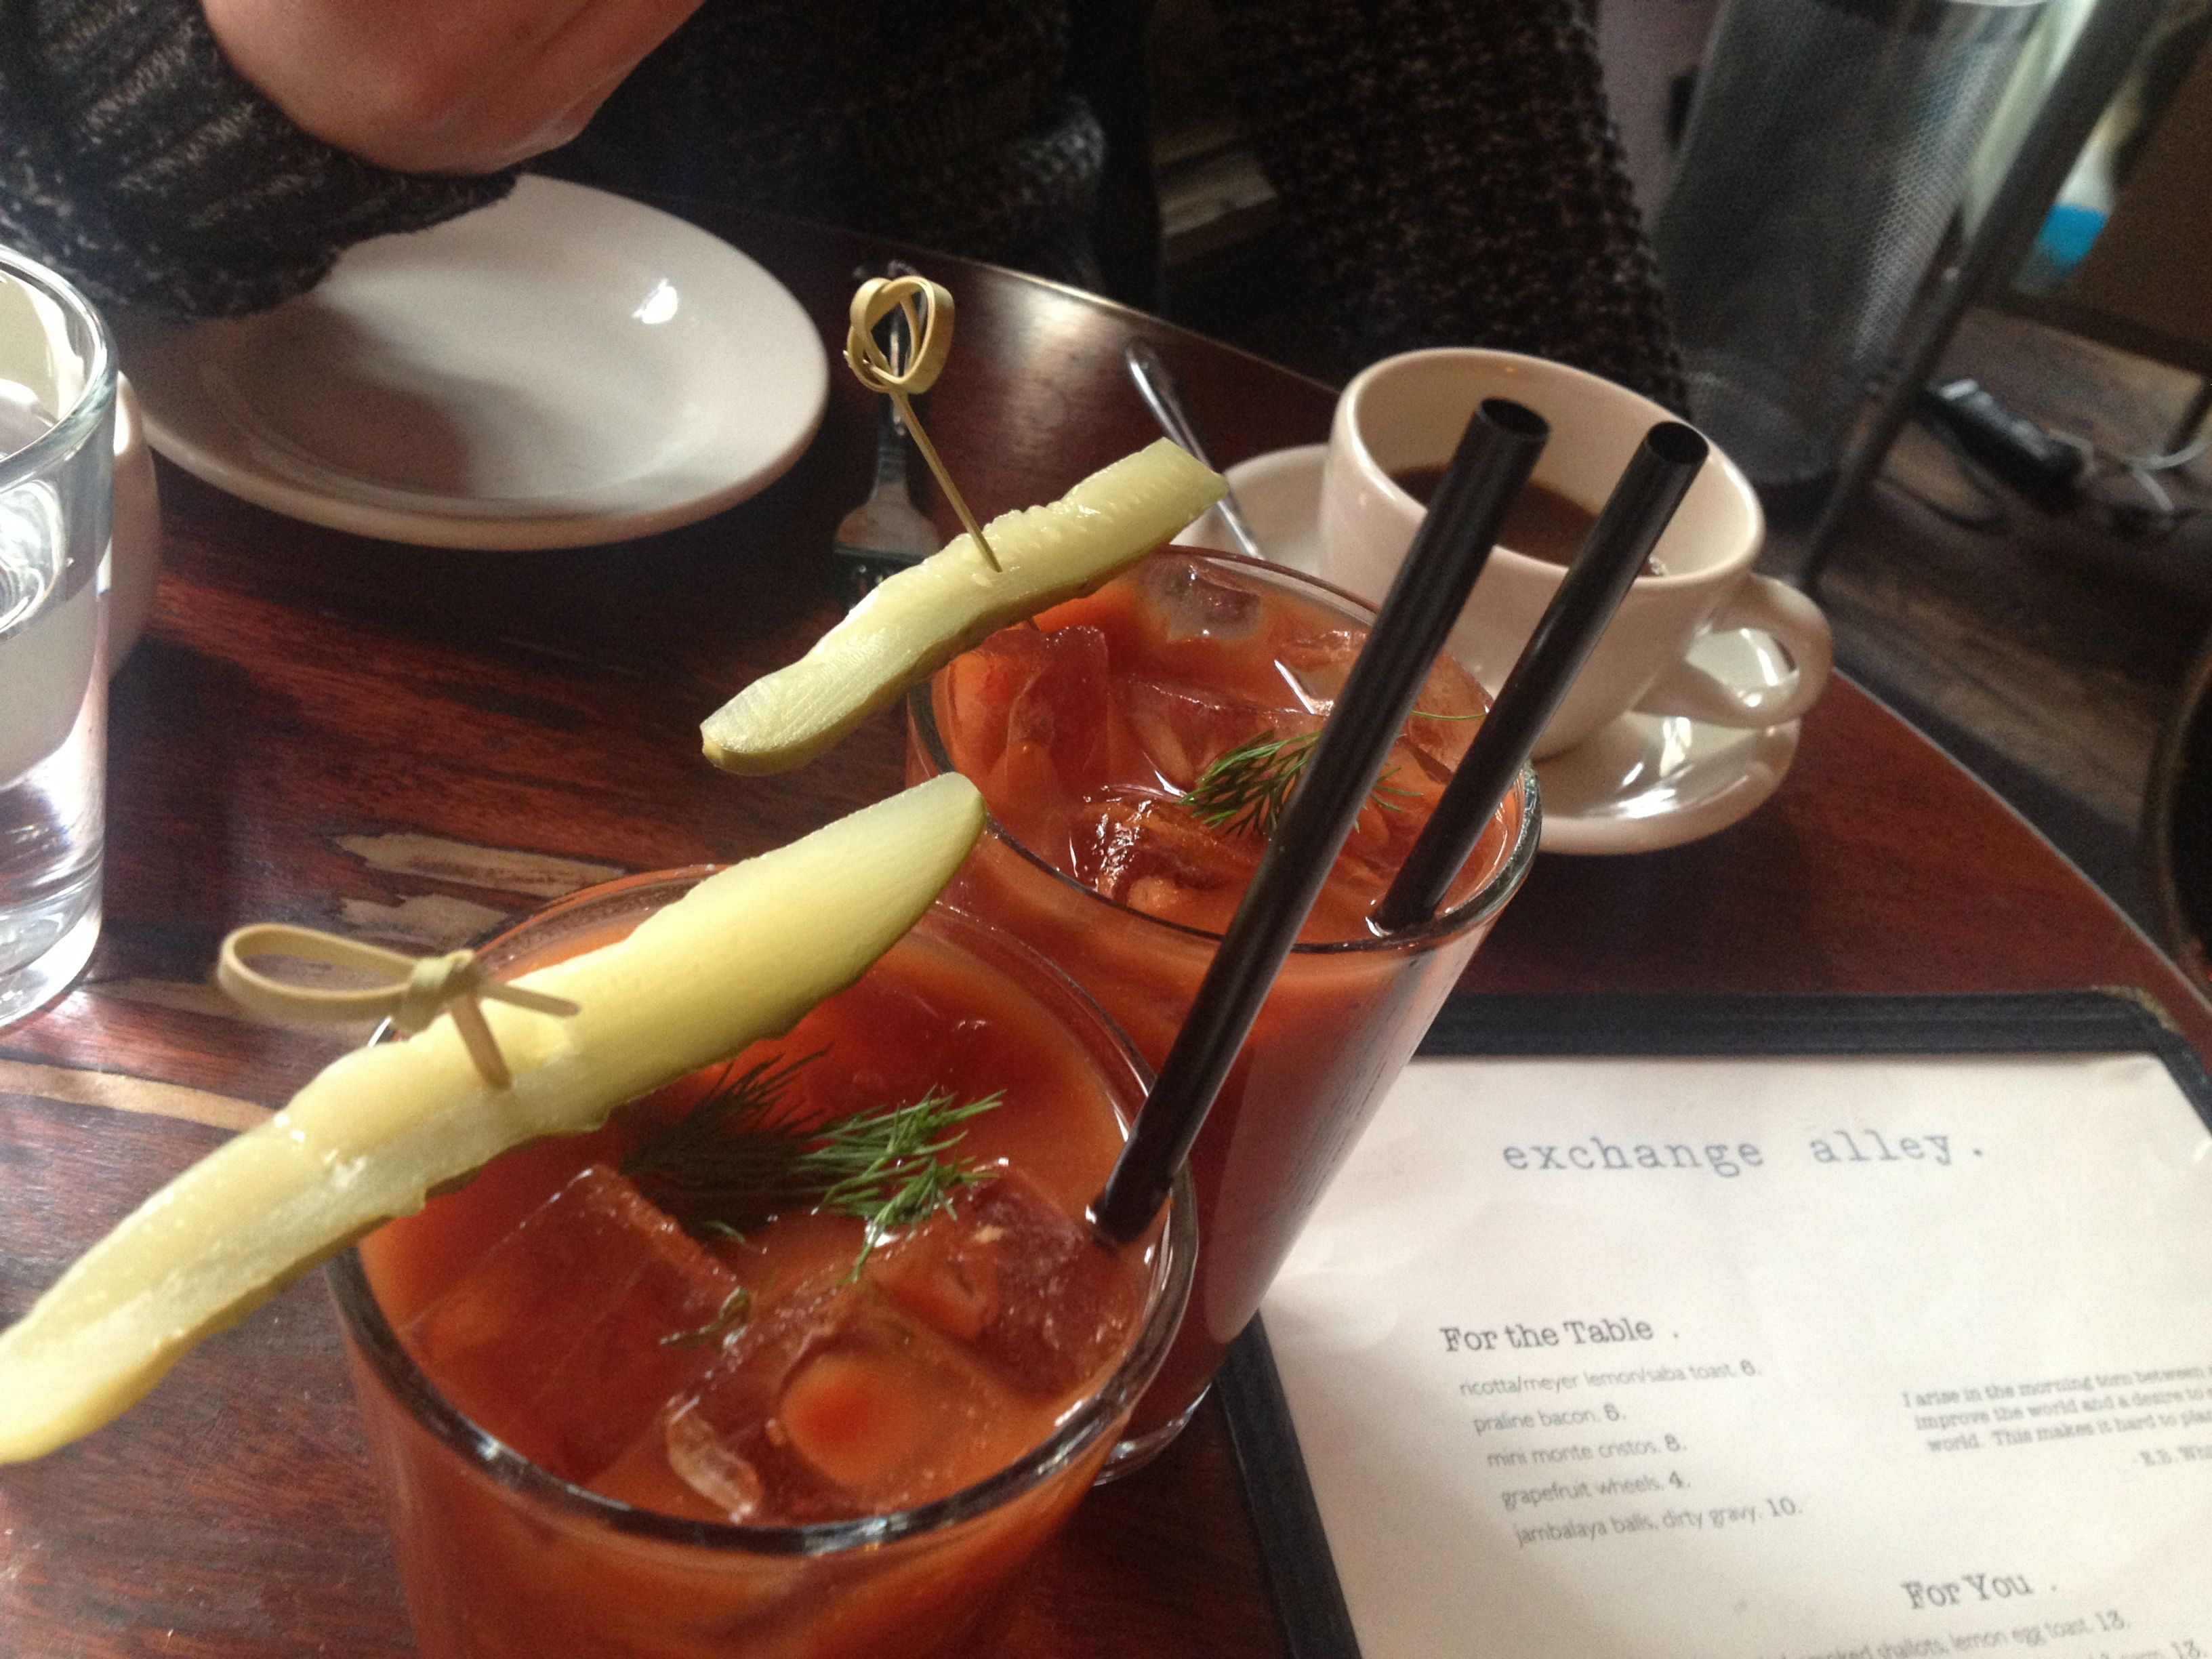 bloody marys. exchange alley. nyc